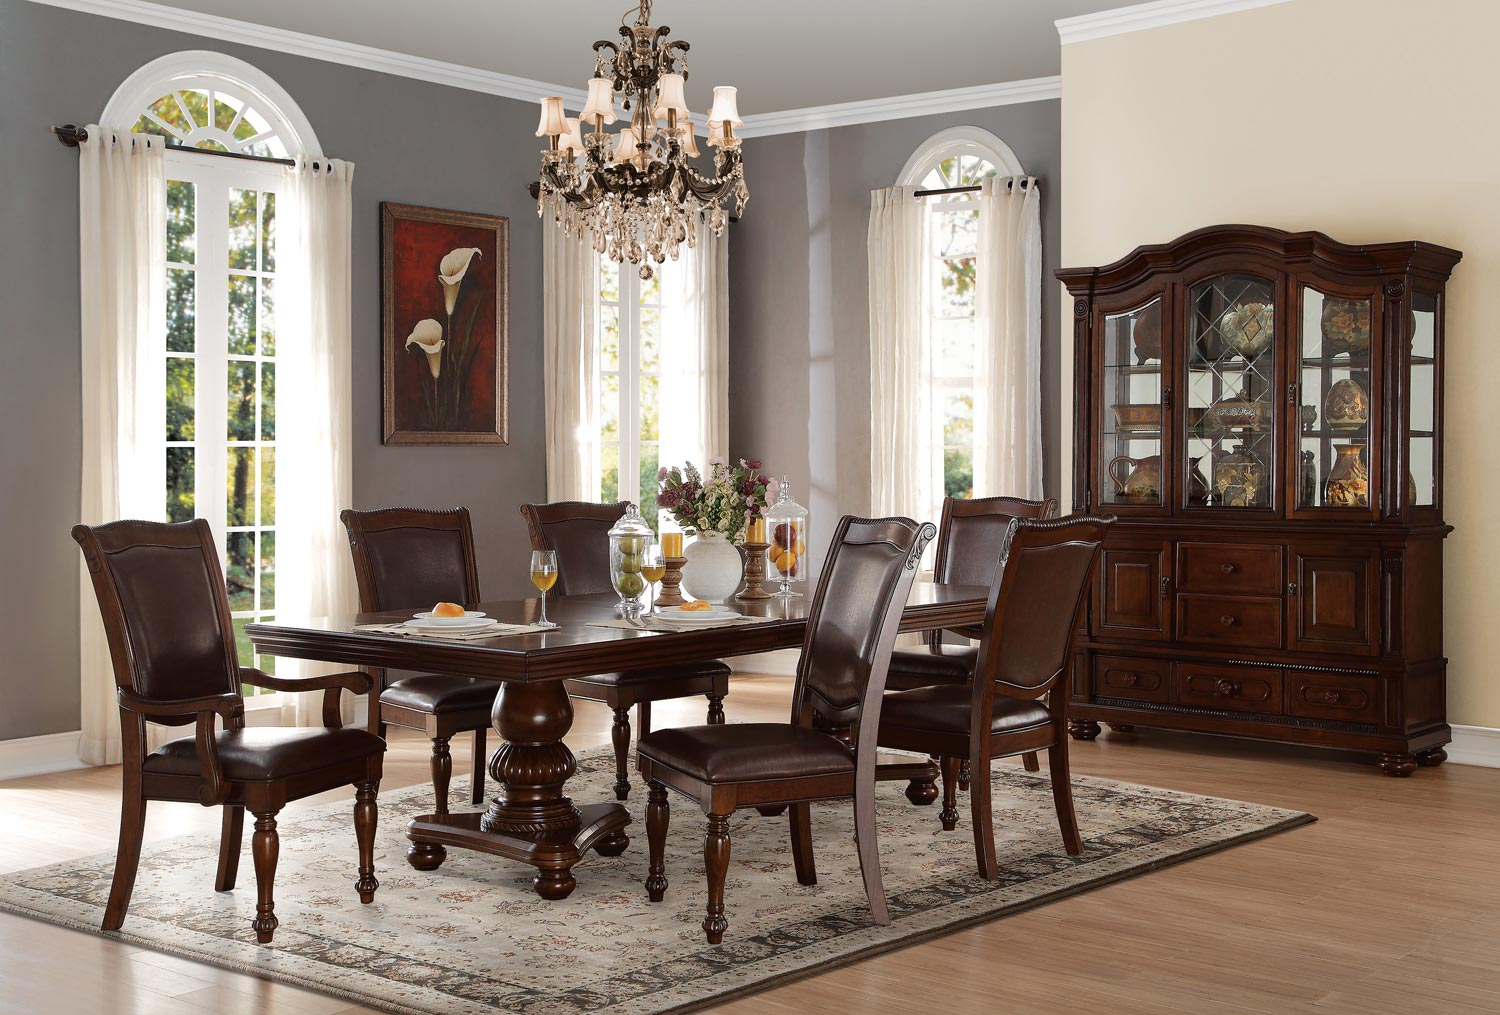 Homelegance Lordsburg Double Pedestal Dining Set - Brown Cherry